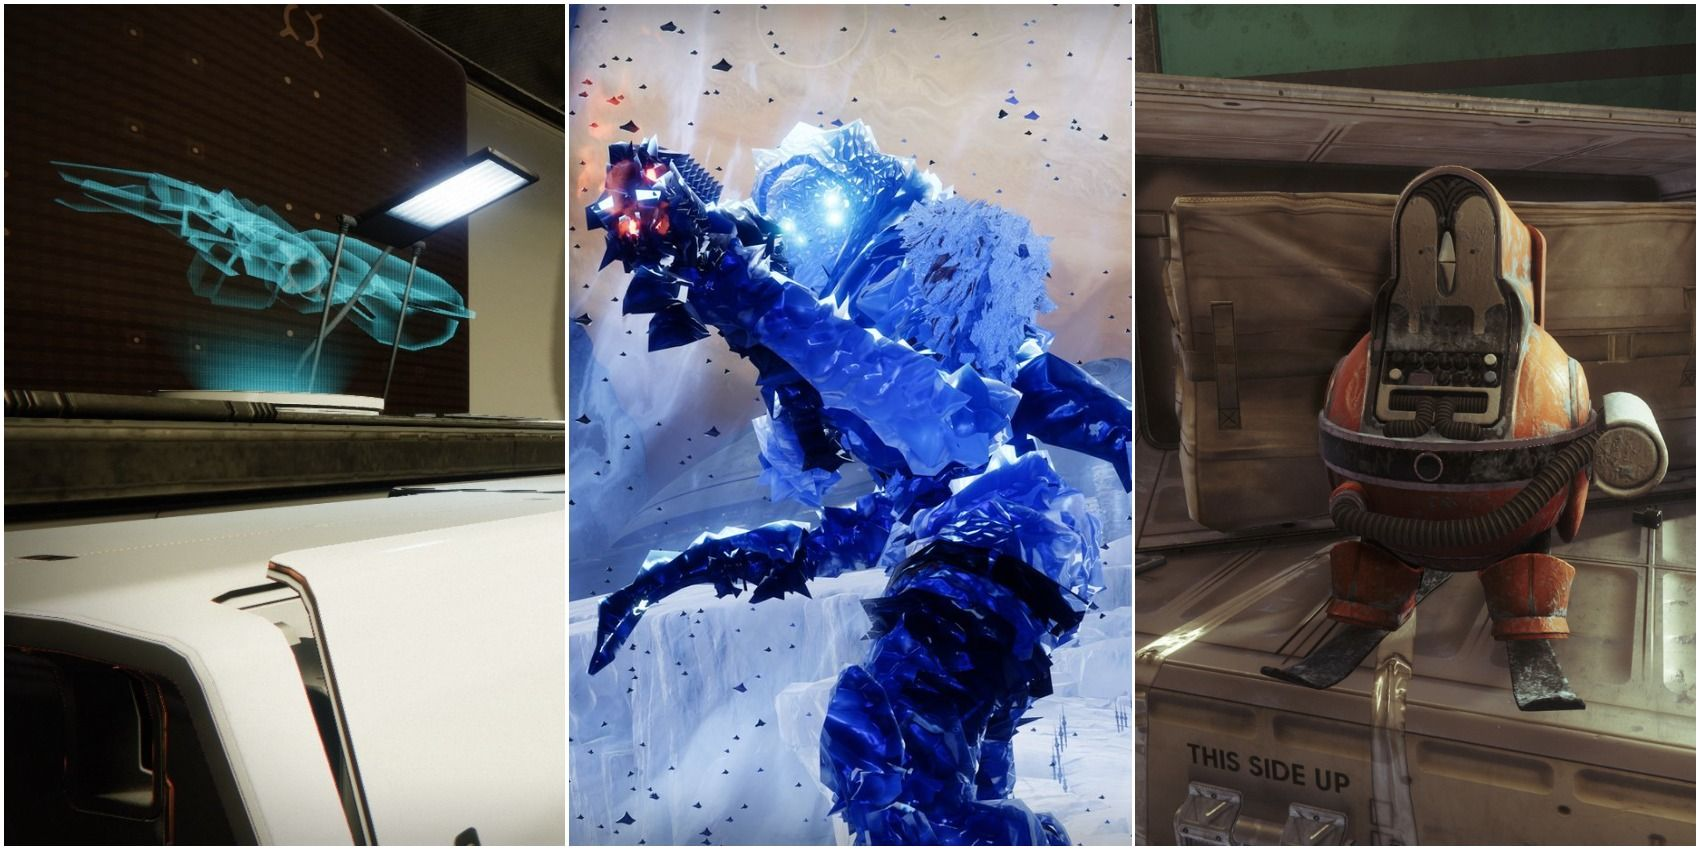 Destiny 2 Beyond Light 10 Hidden Details Most Gamers Missed On Europa Vexes spawn as part of an evoker's summoning attack; destiny 2 beyond light 10 hidden